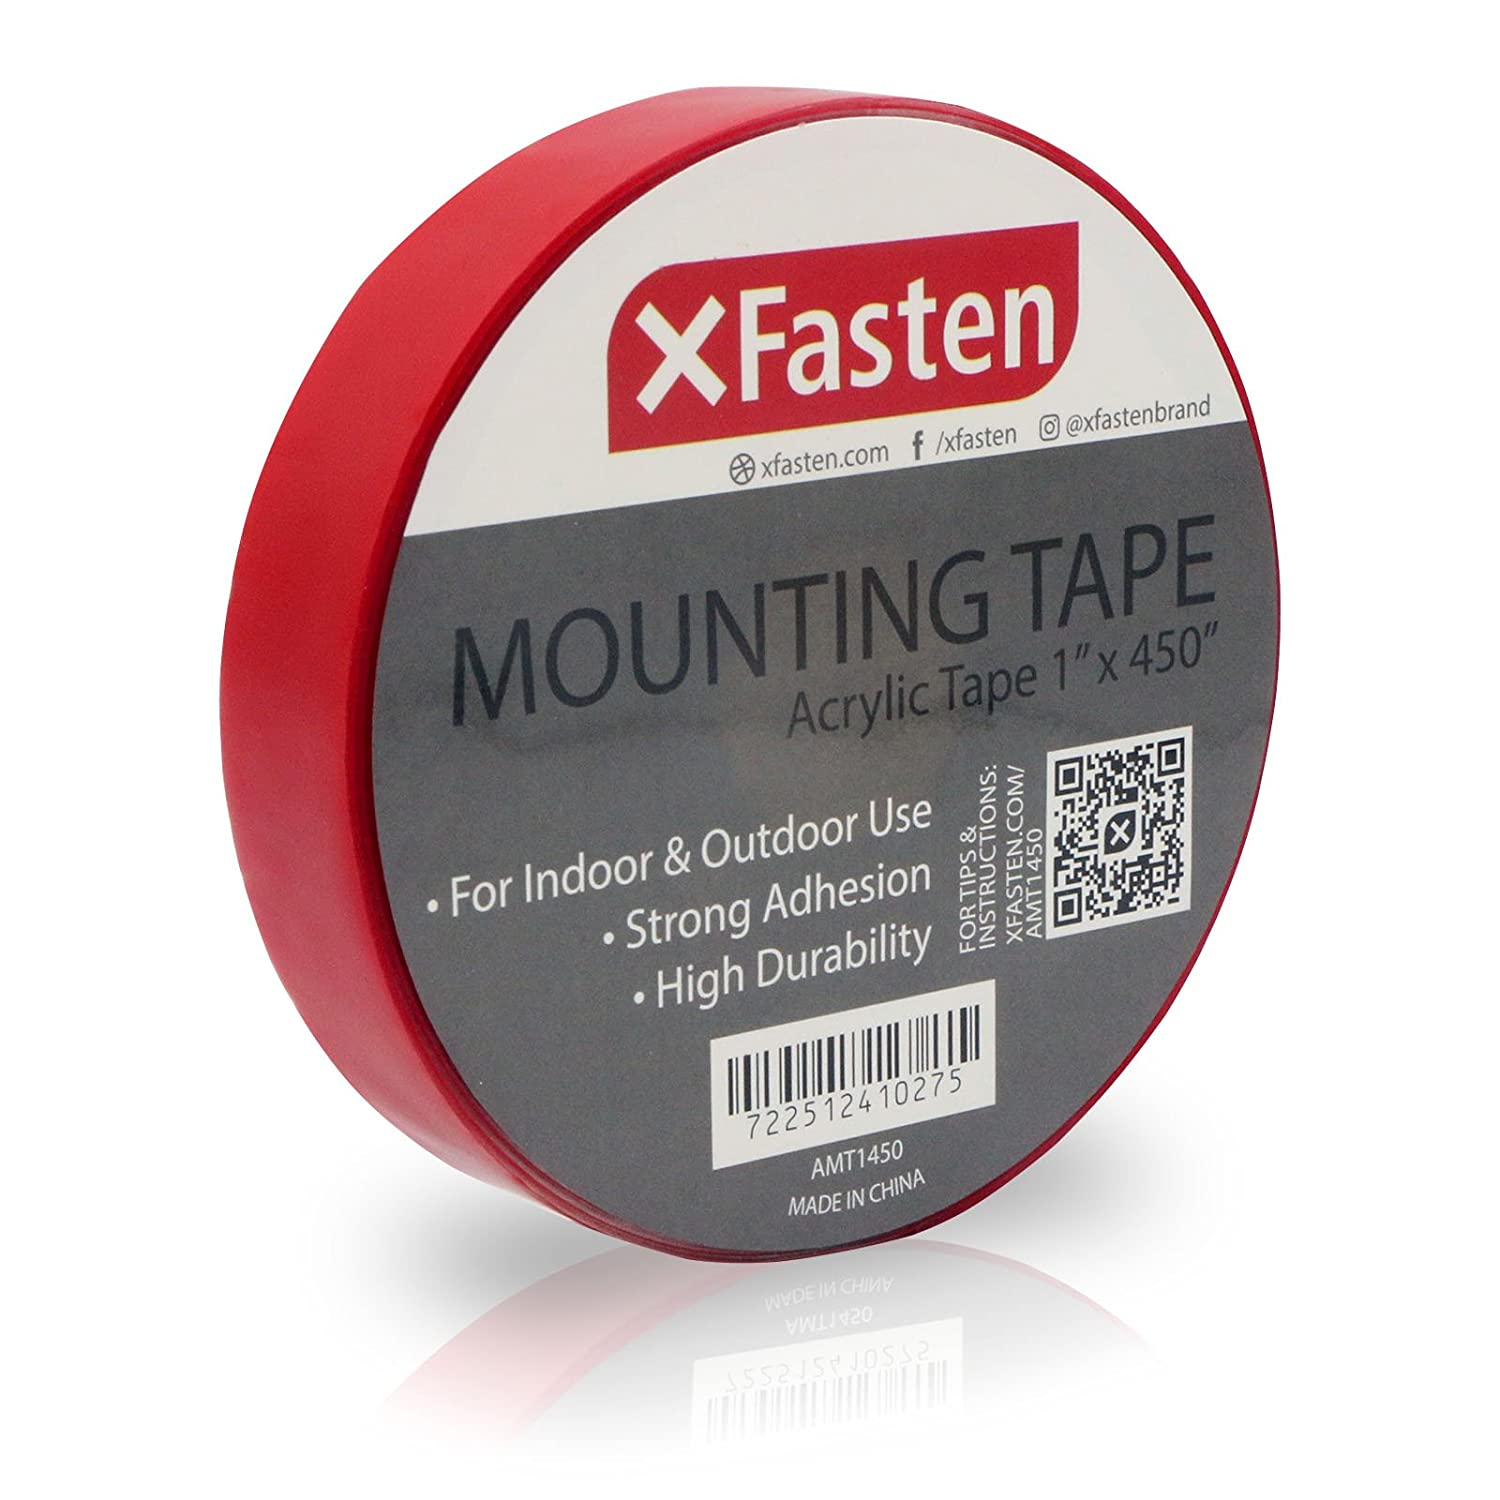 XFasten Acrylic Mounting Tape Removable, 1-Inch x 450-Inch MT1450